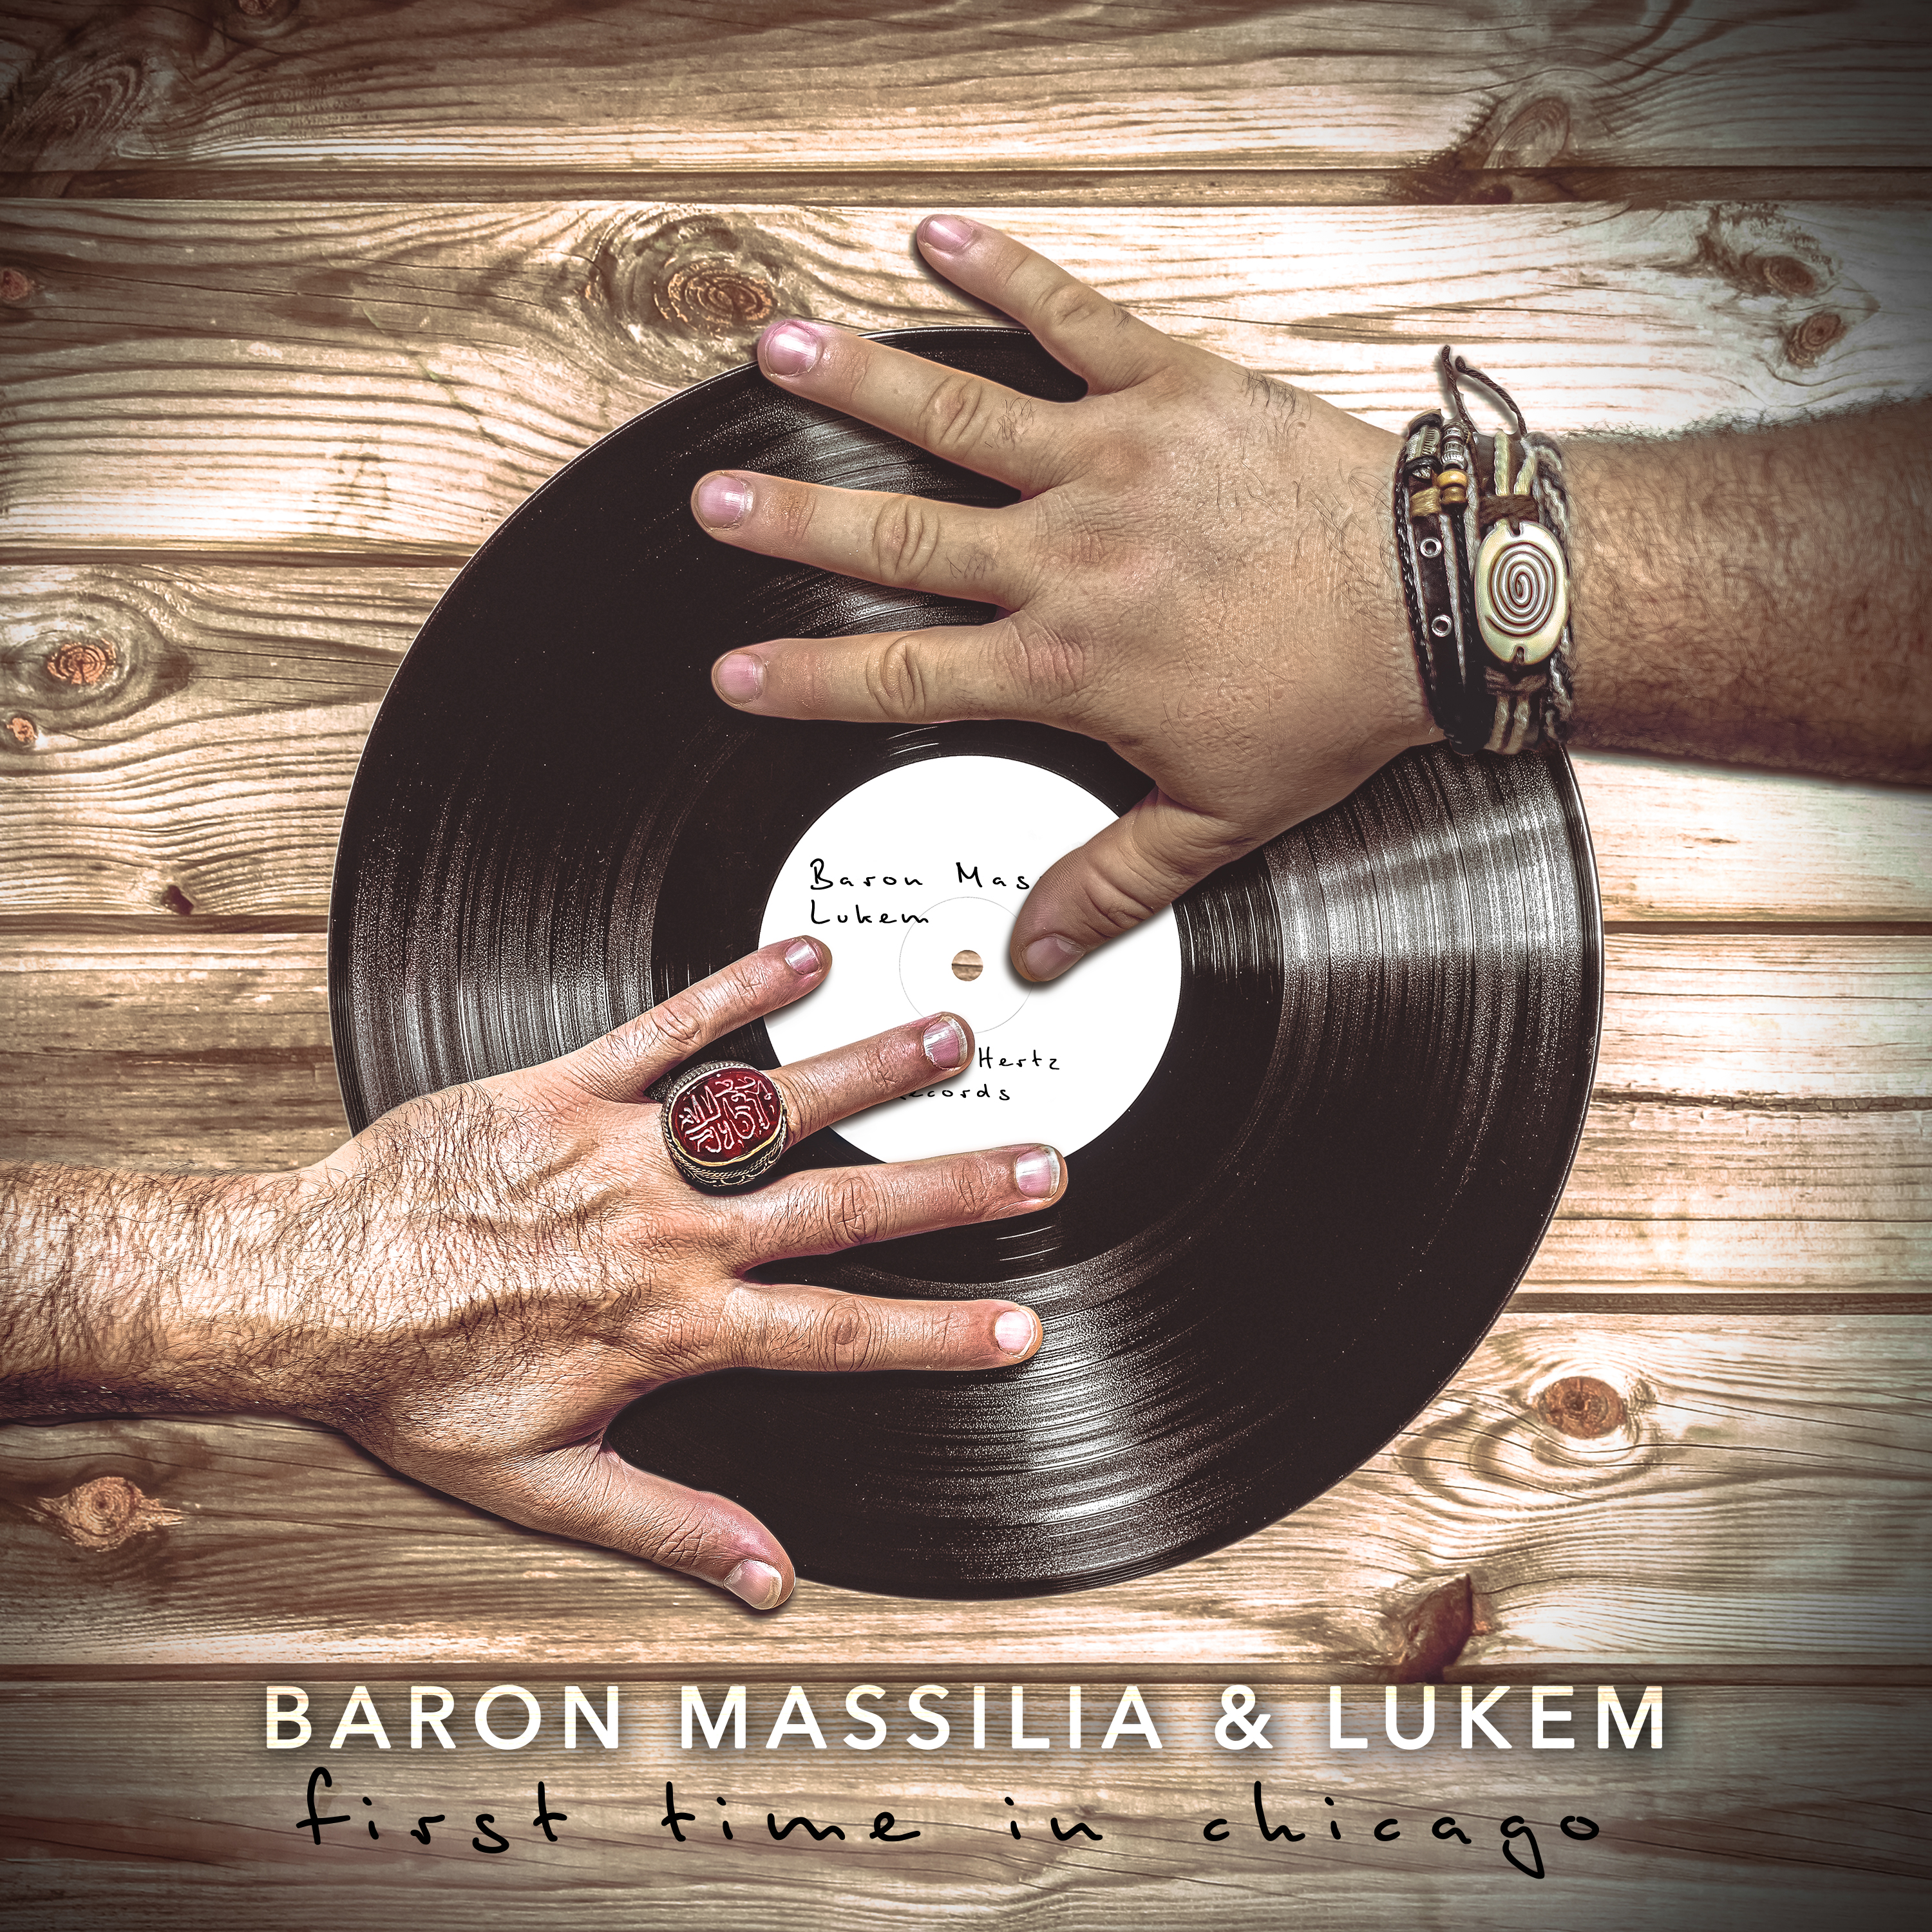 baron_massilia_lukem_first_time_in_chicago_cover_3000x3000.jpg